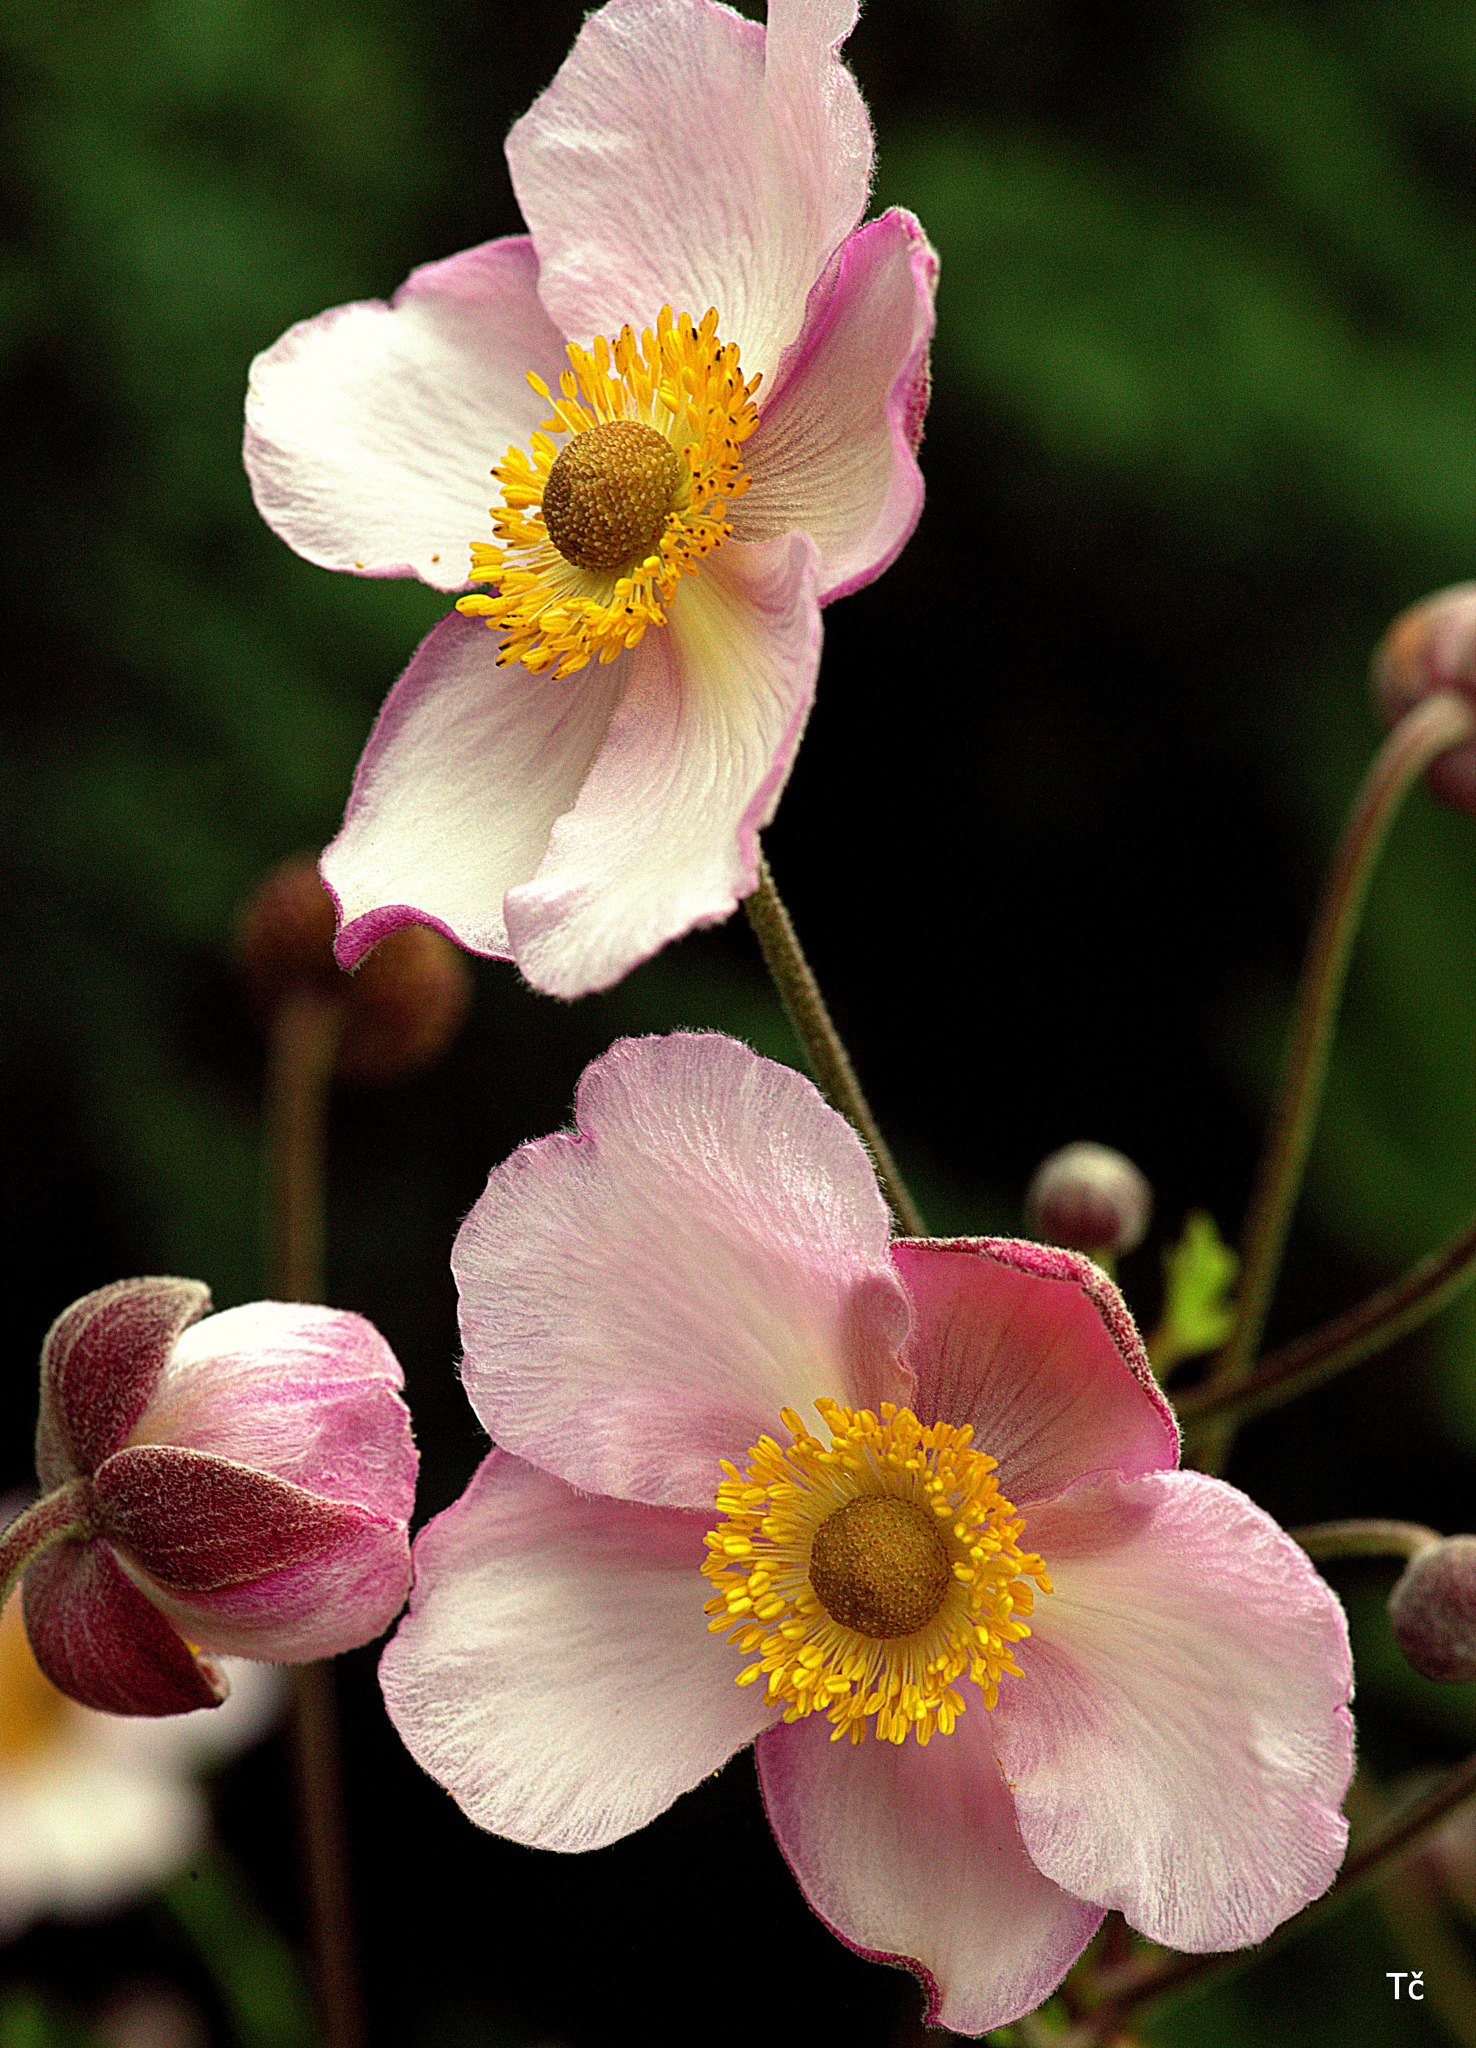 In some places, the anemones were hurrying this year by leopold.brzin